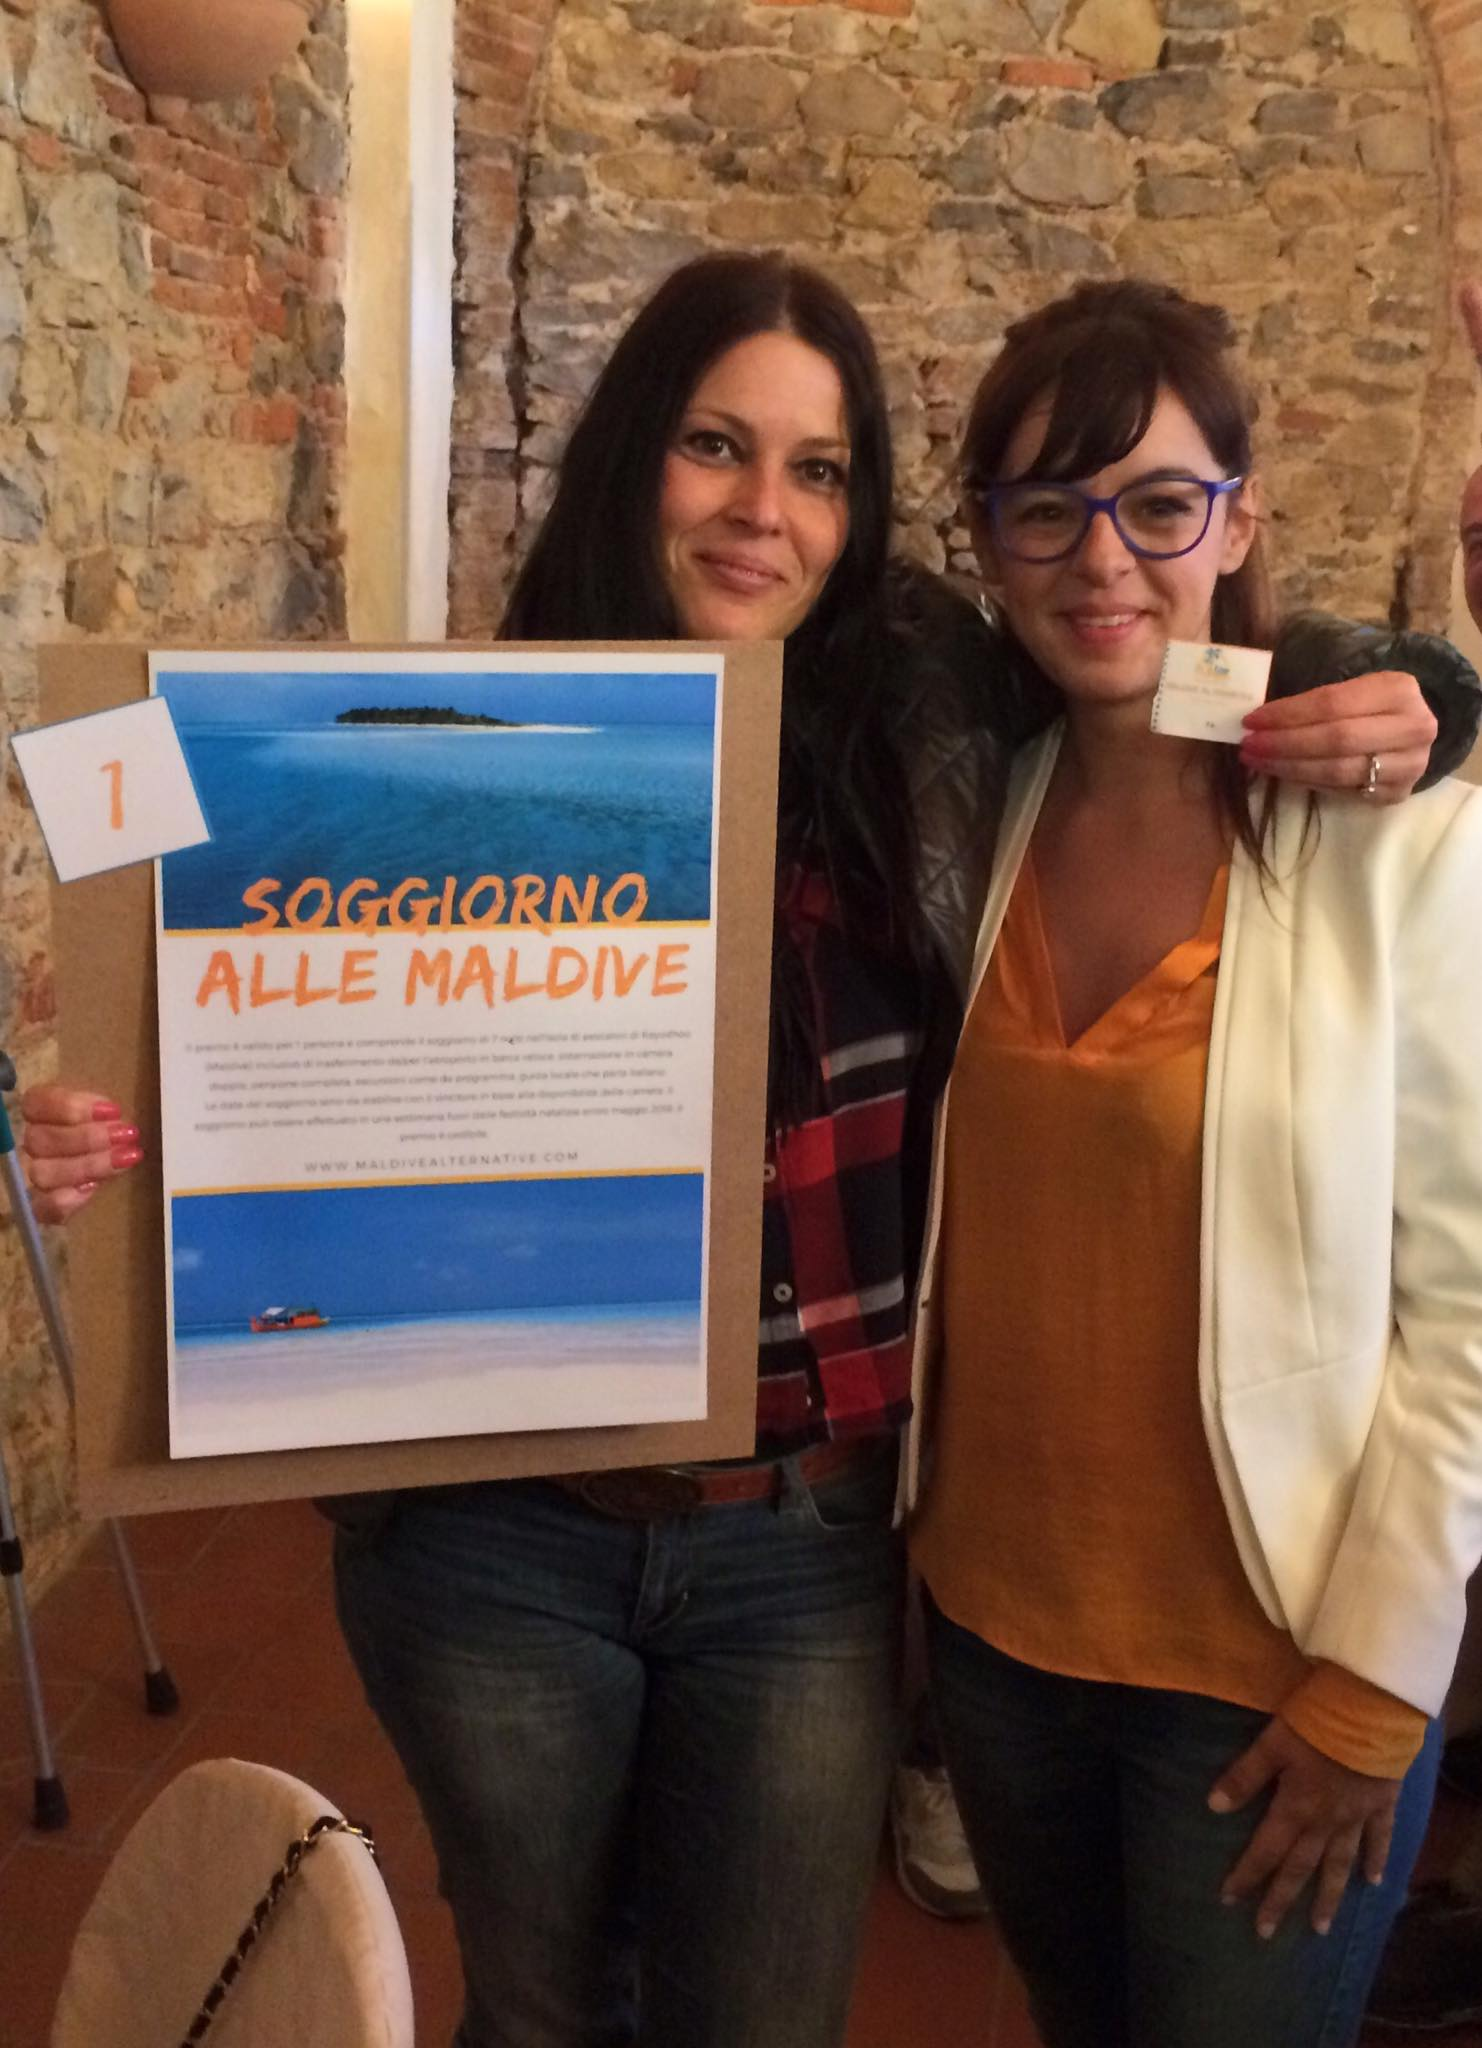 Evento Maldive Alternative in Toscana